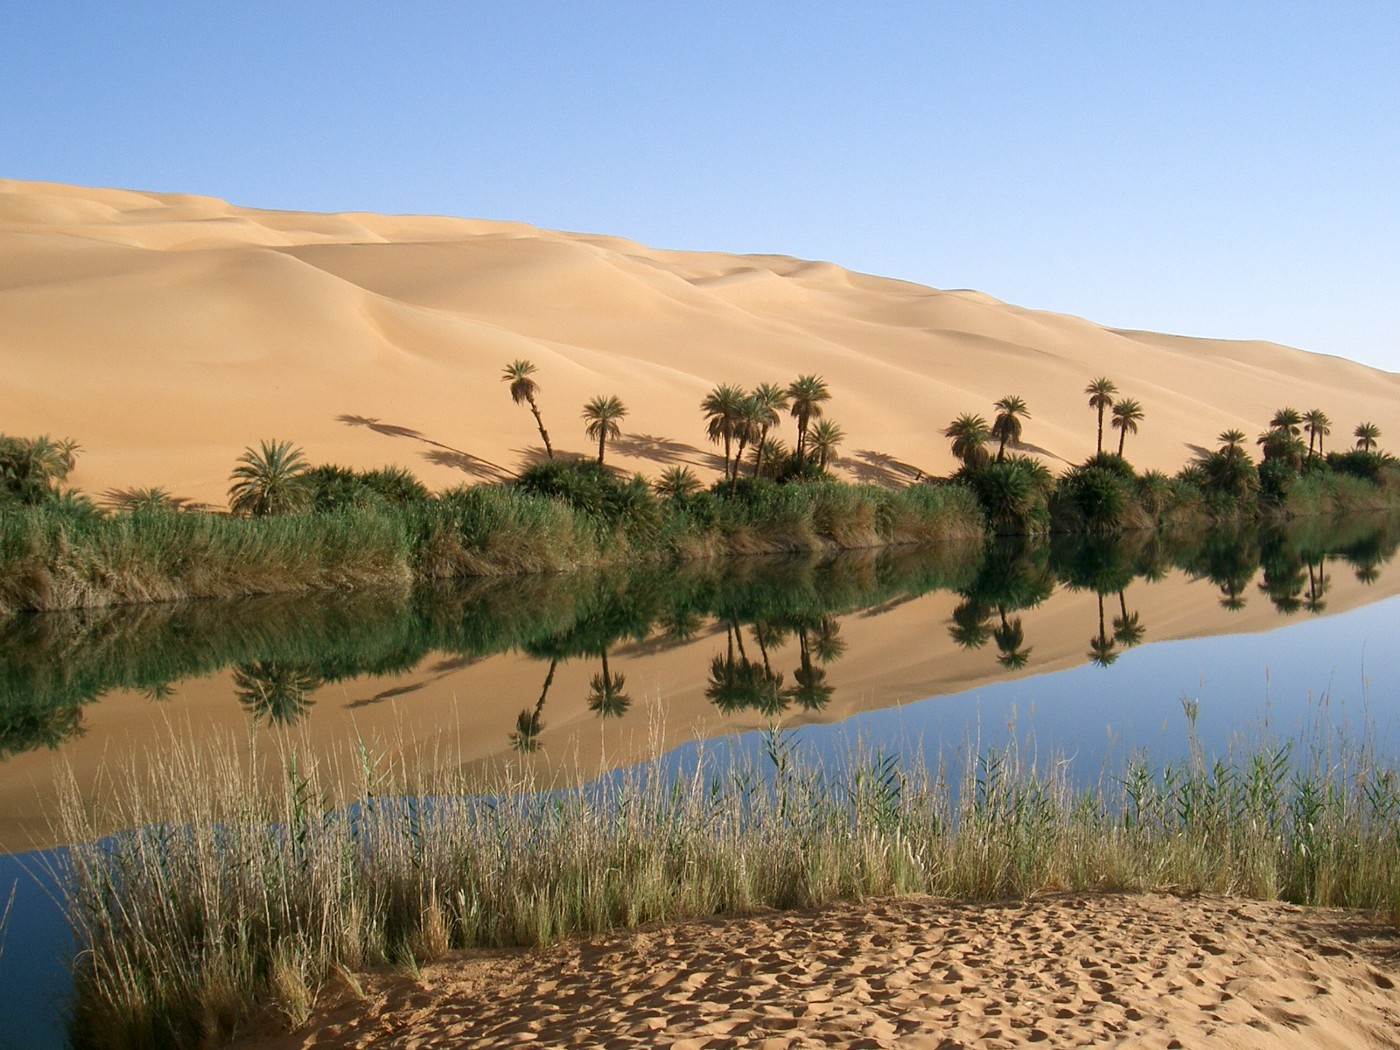 Water in a desert oasis.